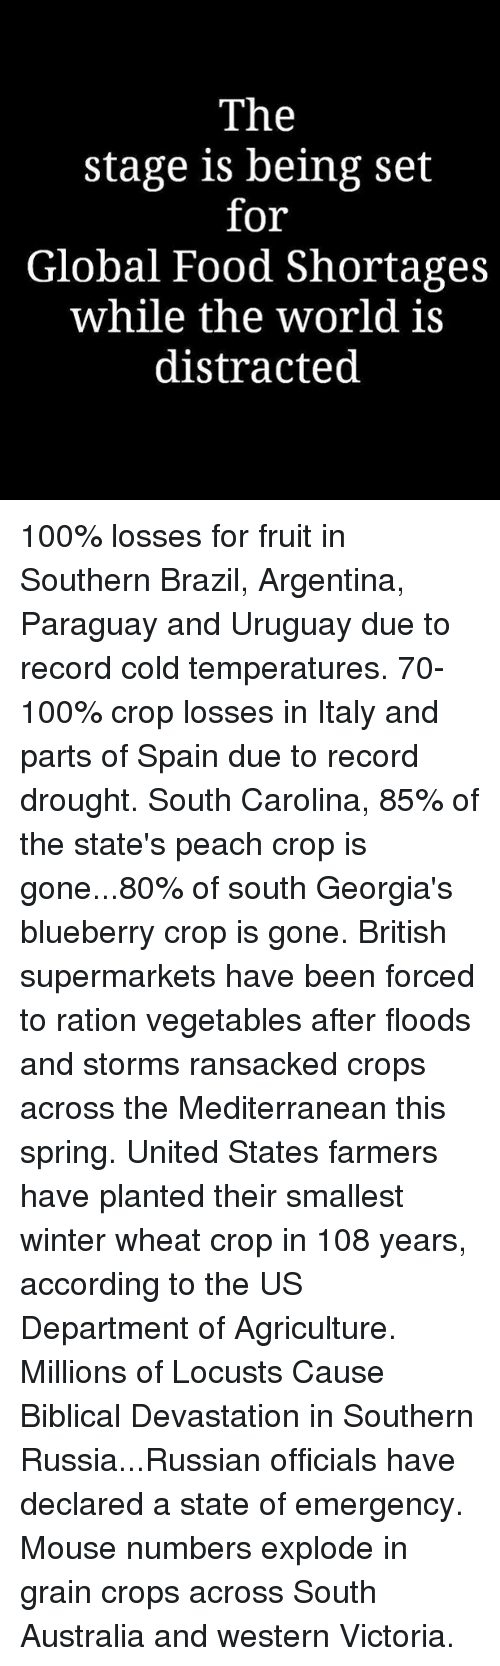 Anaconda, Food, and Memes: The  stage is being set  for  Global Food Shortages  while the world is  distracted 100% losses for fruit in Southern Brazil, Argentina, Paraguay and Uruguay due to record cold temperatures. 70-100% crop losses in Italy and parts of Spain due to record drought. South Carolina, 85% of the state's peach crop is gone...80% of south Georgia's blueberry crop is gone. British supermarkets have been forced to ration vegetables after floods and storms ransacked crops across the Mediterranean this spring. United States farmers have planted their smallest winter wheat crop in 108 years, according to the US Department of Agriculture. Millions of Locusts Cause Biblical Devastation in Southern Russia...Russian officials have declared a state of emergency. Mouse numbers explode in grain crops across South Australia and western Victoria.